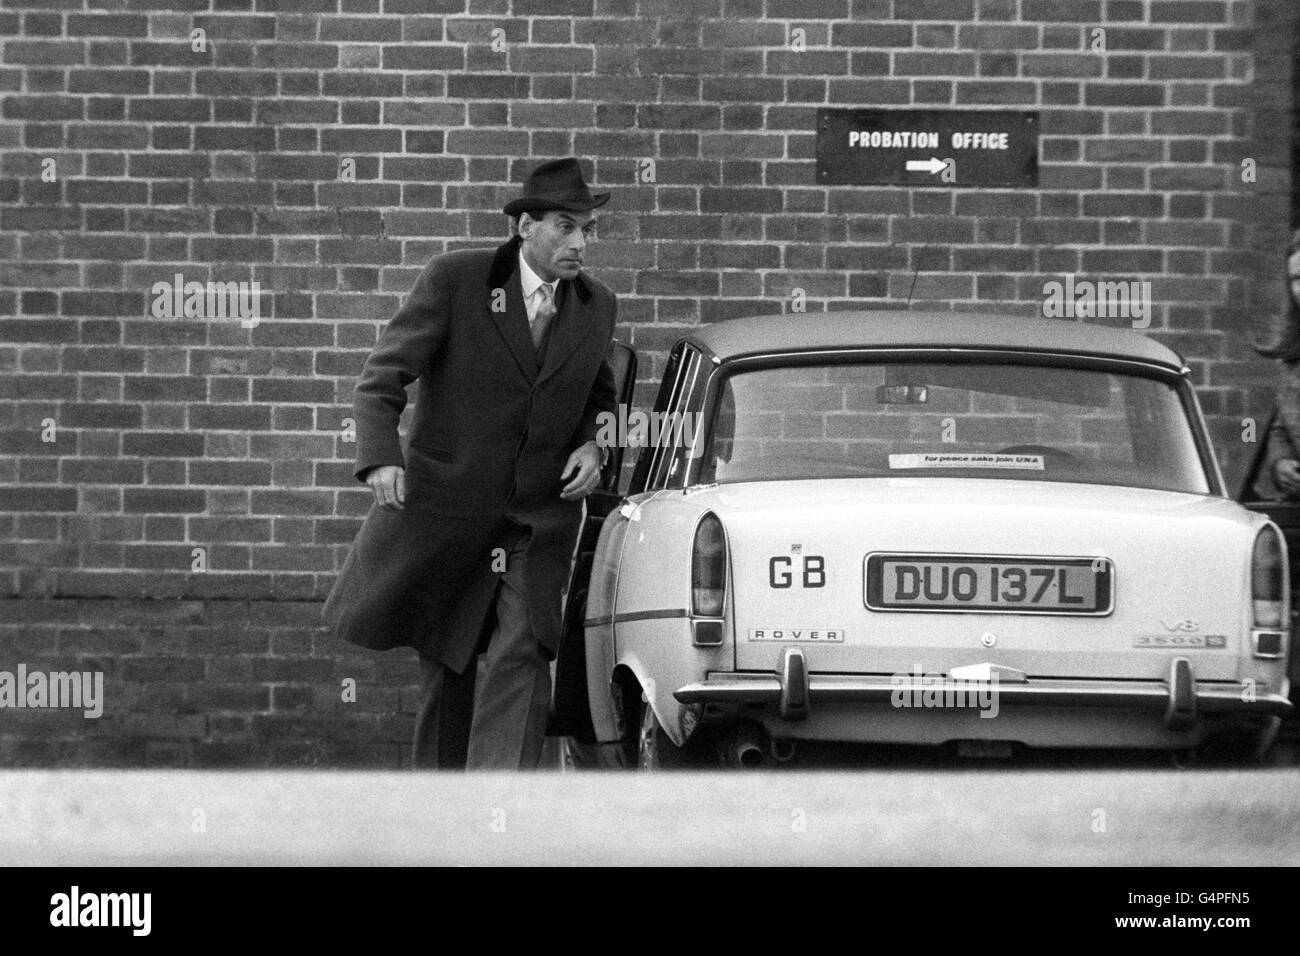 Crime - Attempted Murder - Jeremy Thorpe Hitman Trial - Minehead - Stock Image